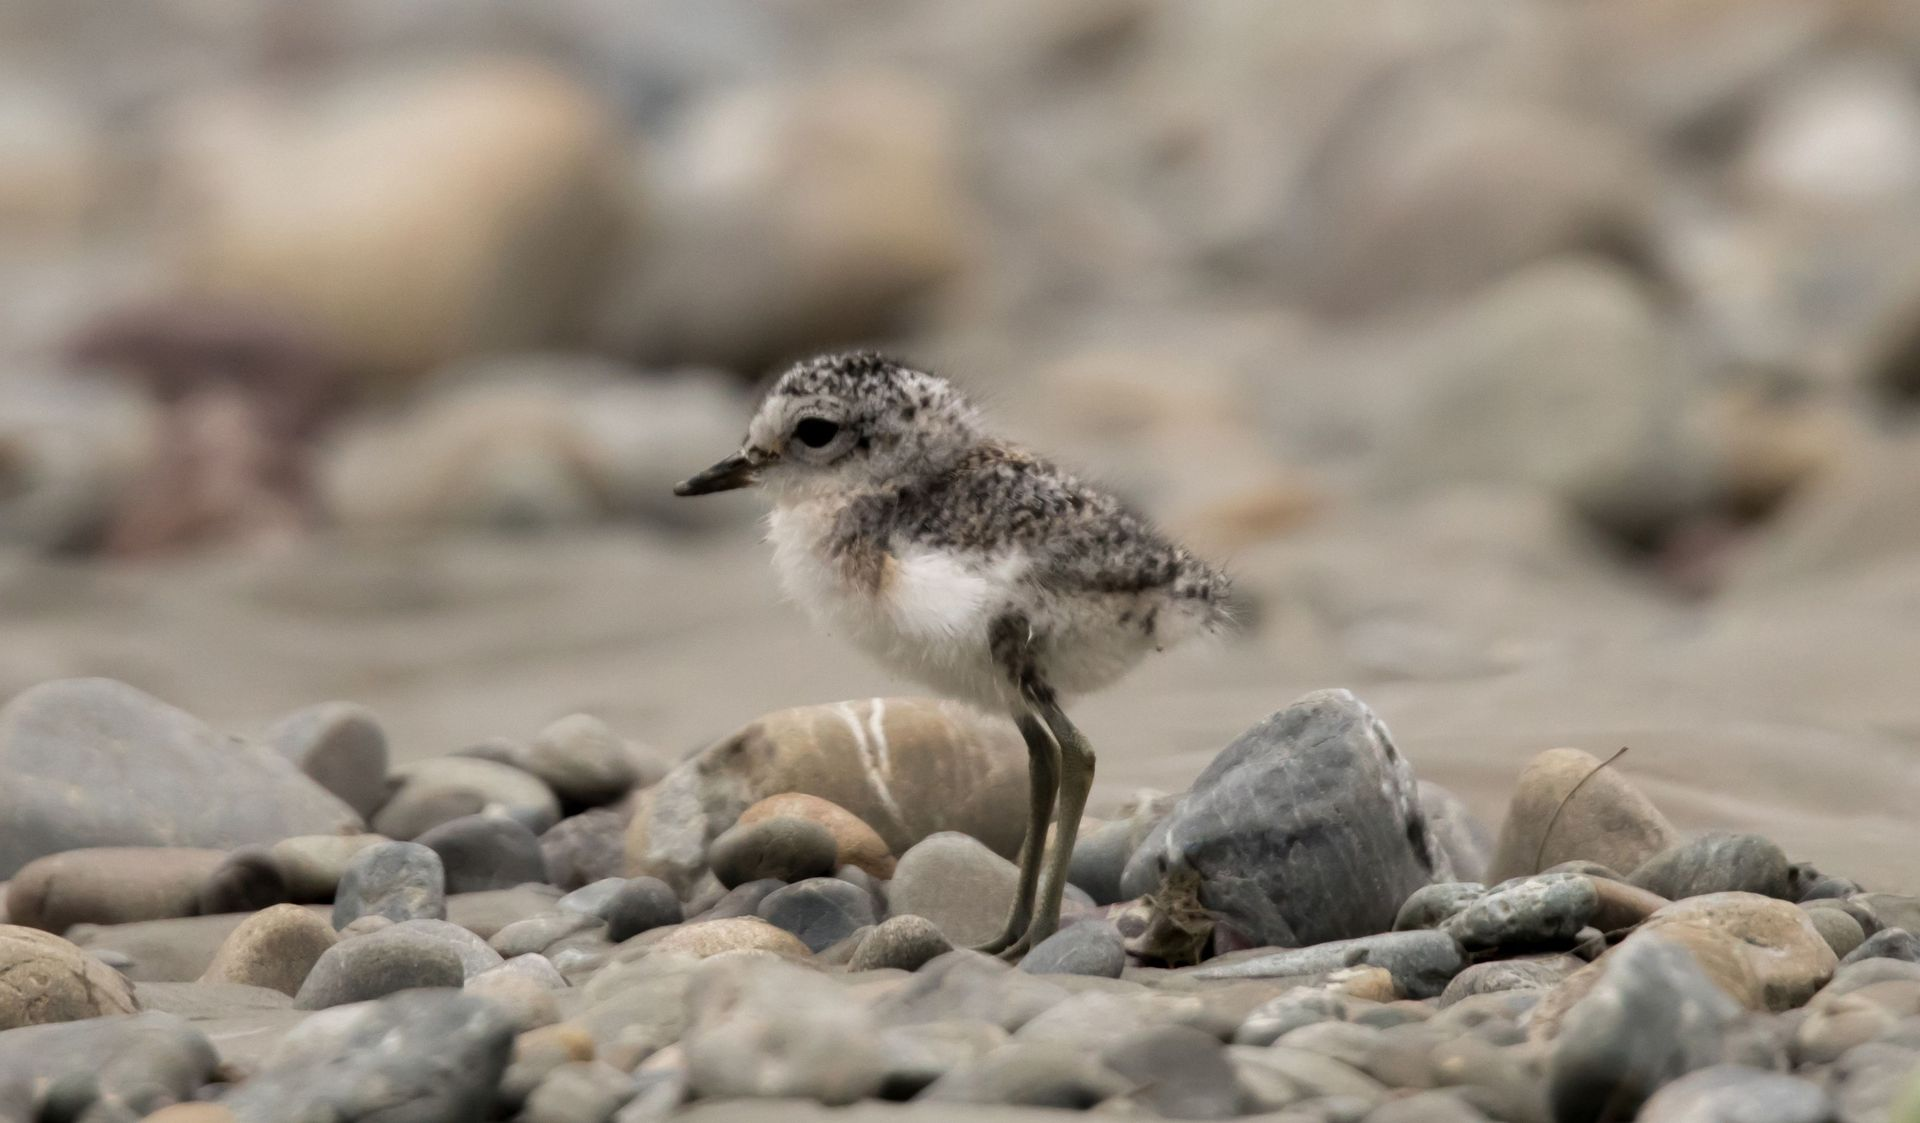 Dogs roam free as vulnerable dotterel breed on Hawke's Bay beaches